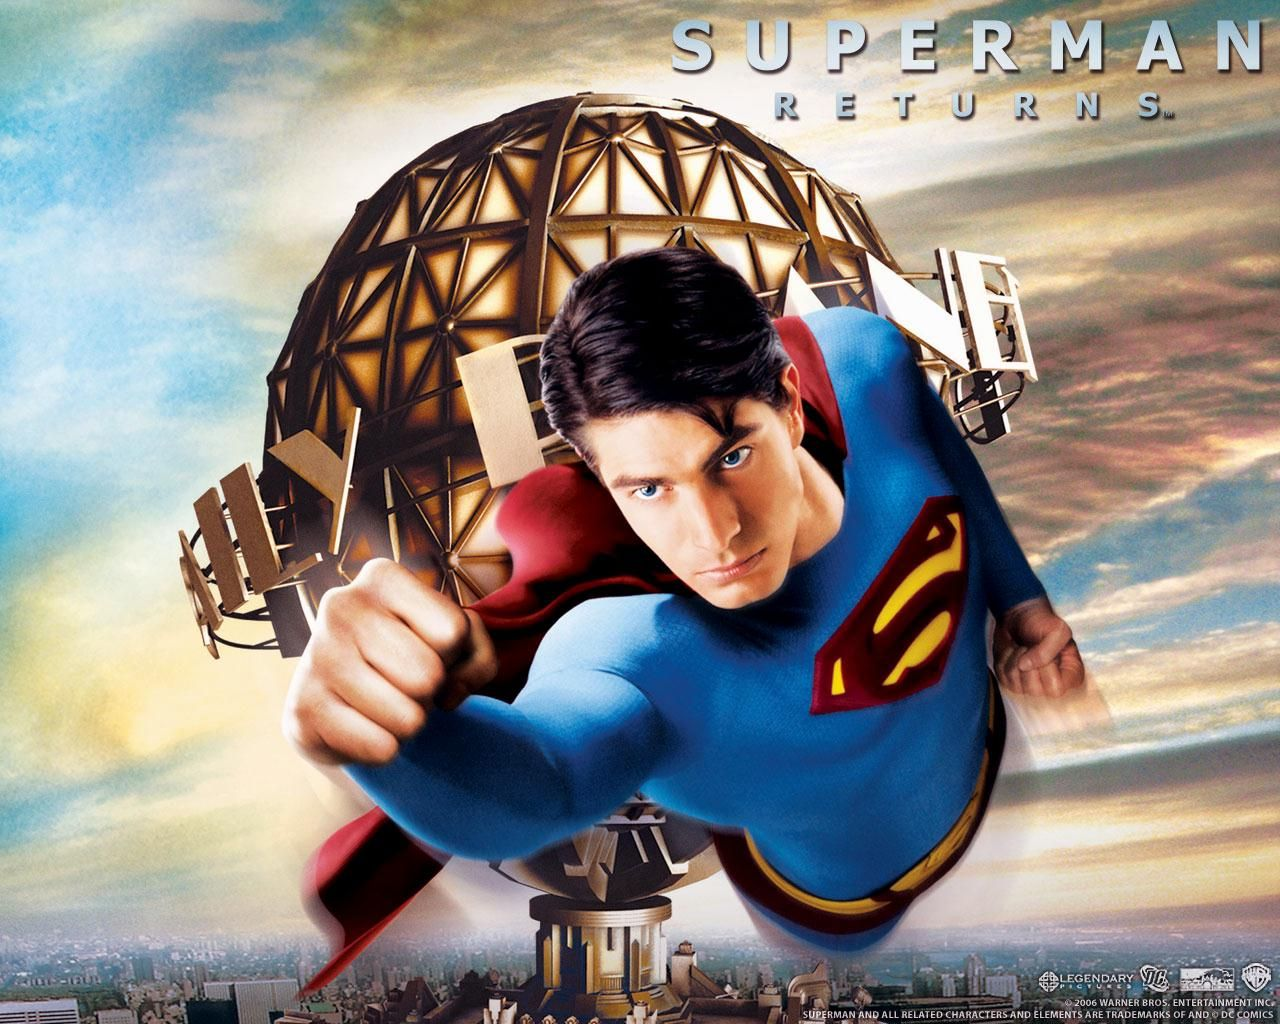 http://3.bp.blogspot.com/-WWPsI-yNlCI/UPFzGEm6eEI/AAAAAAAAAKo/WAYFmEQd-DQ/s1600/Superman+Returns+Movies+Wallpapers.jpg